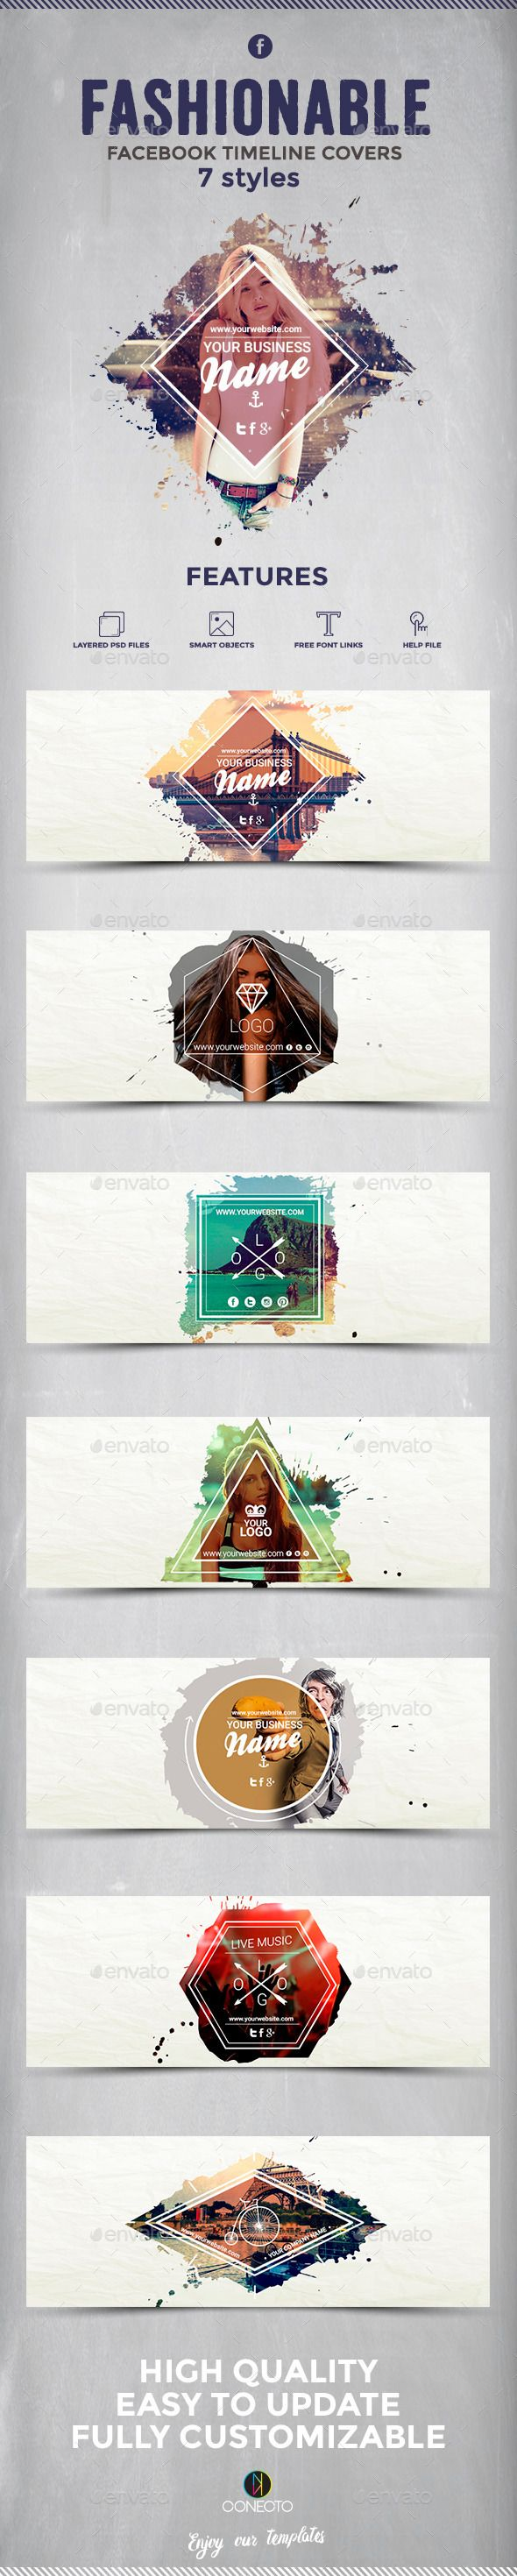 Fashionable Facebook Timeline Covers Template #design Download: http://graphicriver.net/item/fashionable-facebook-timeline-covers/12254664?ref=ksioks